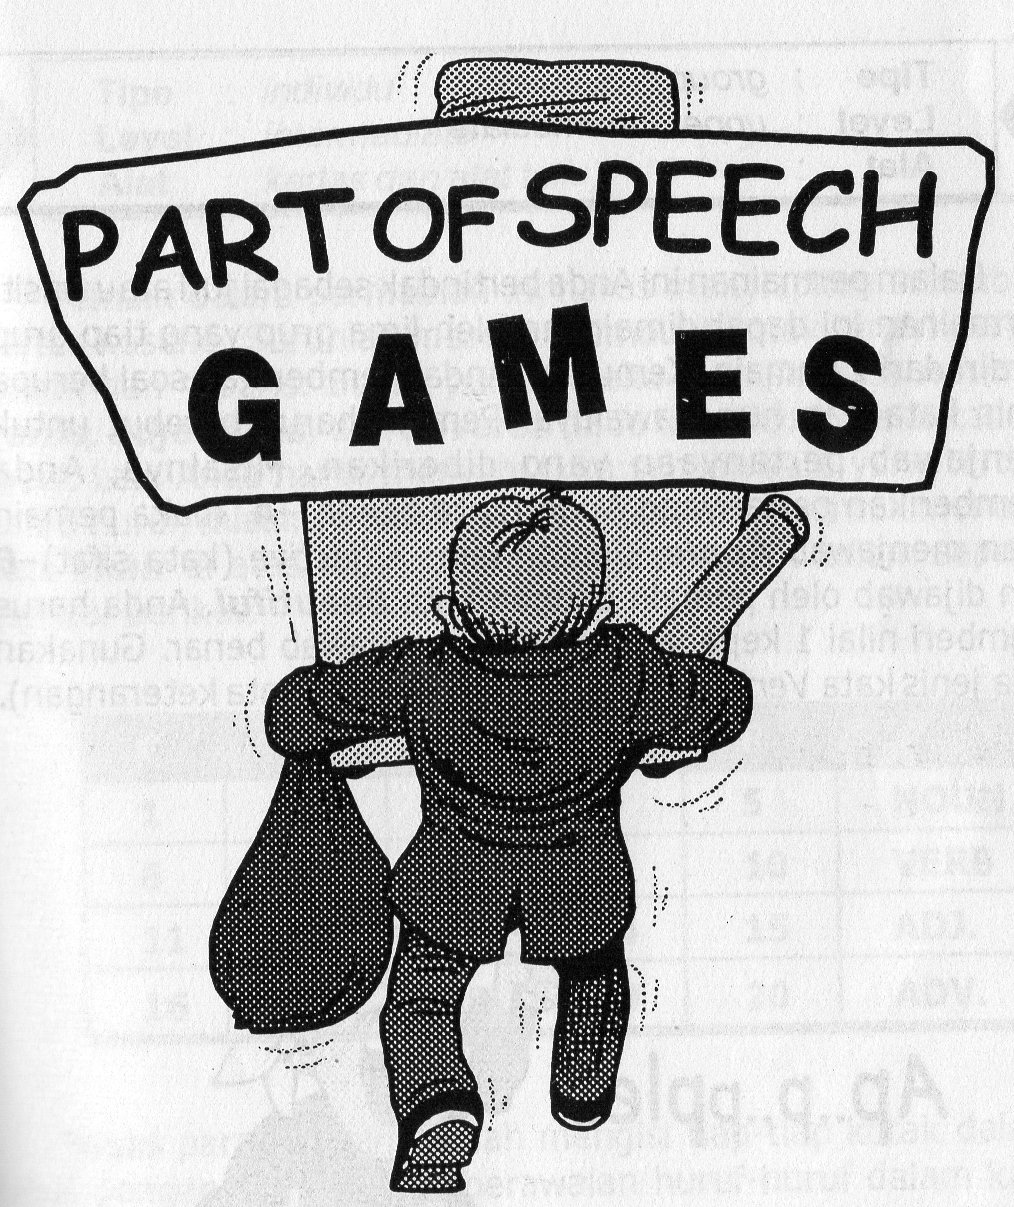 3 Contoh Part Of Speech Games yang Menyenangkan